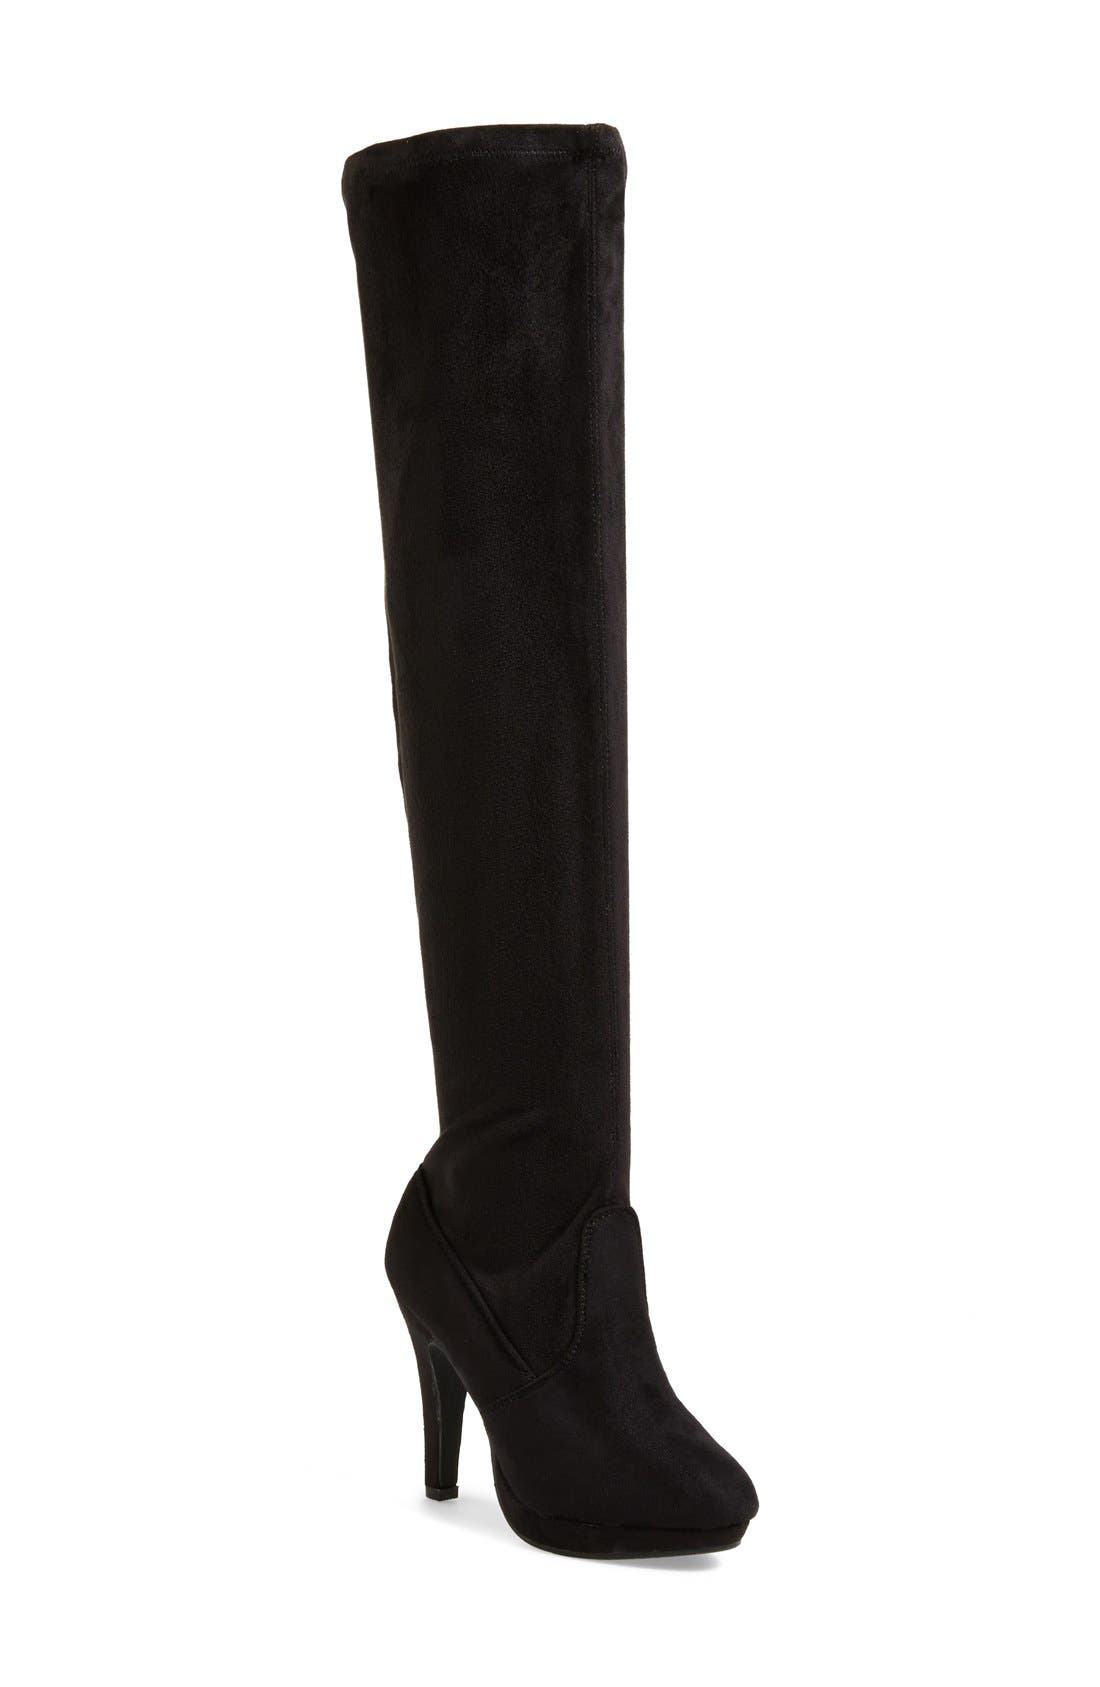 REPORT 'Nadya' Over The Knee Boot,                             Main thumbnail 1, color,                             001